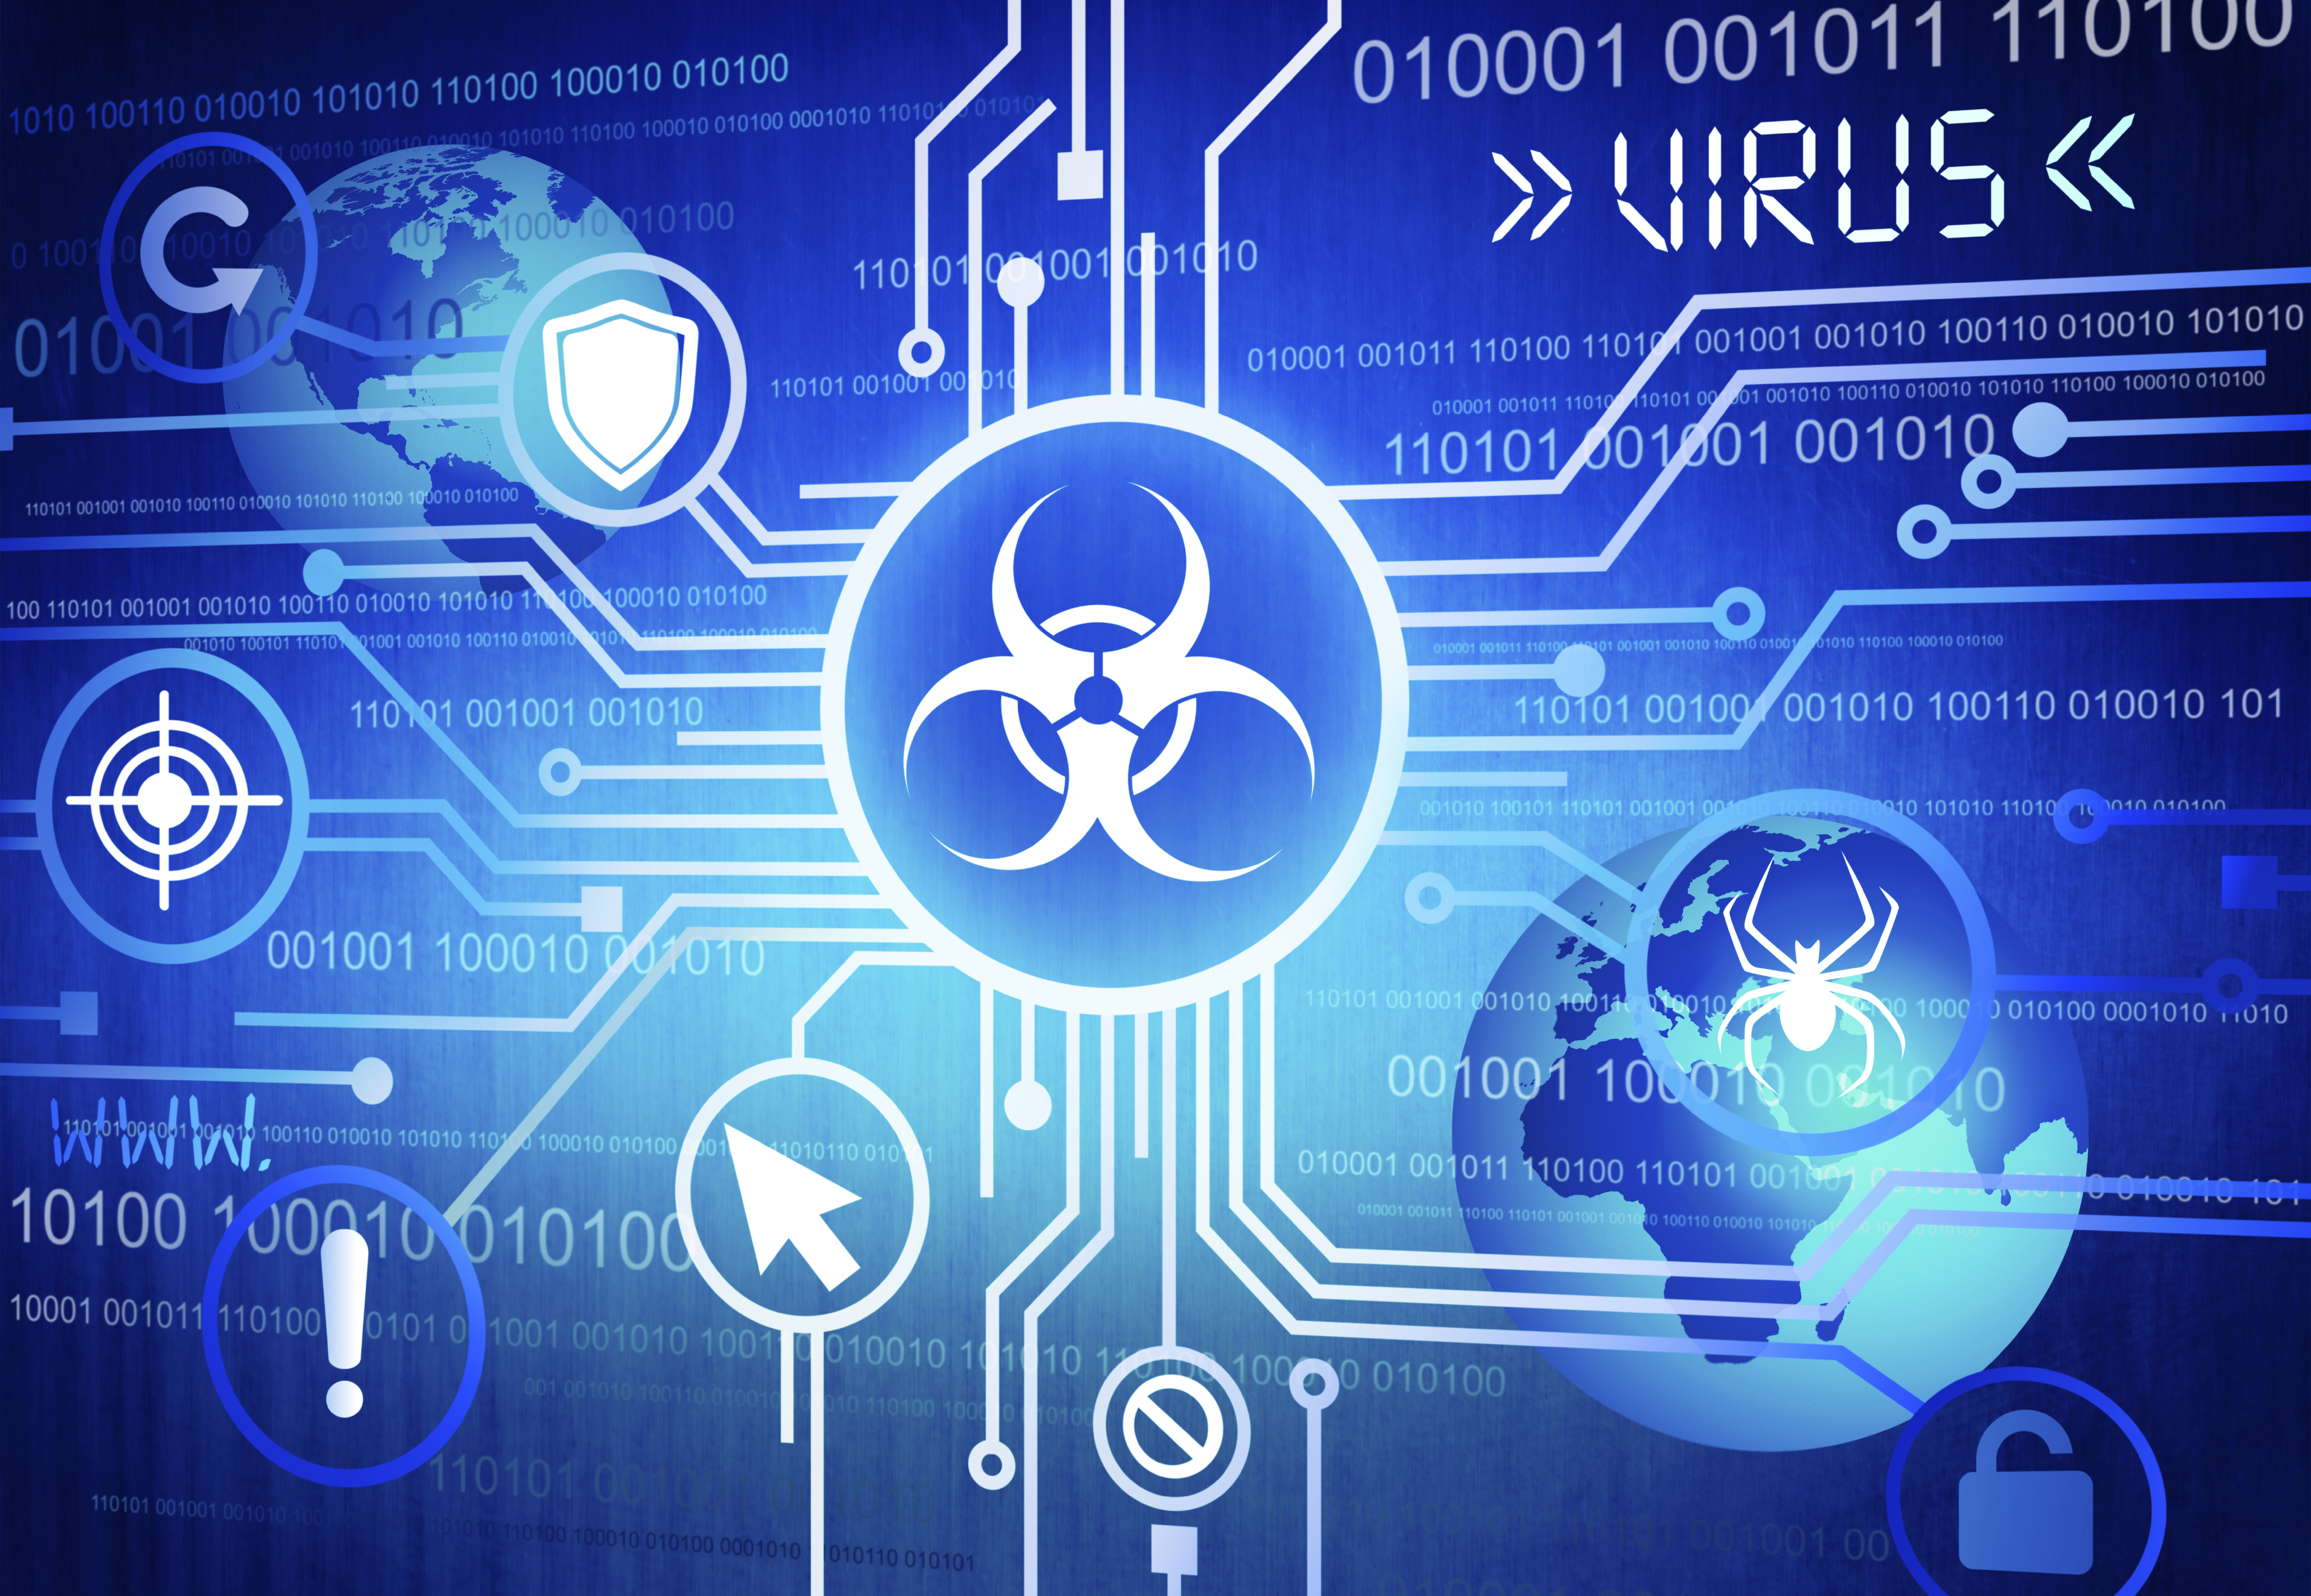 On Approaches to Internet Security, Cybersecurity, and the Path Forward